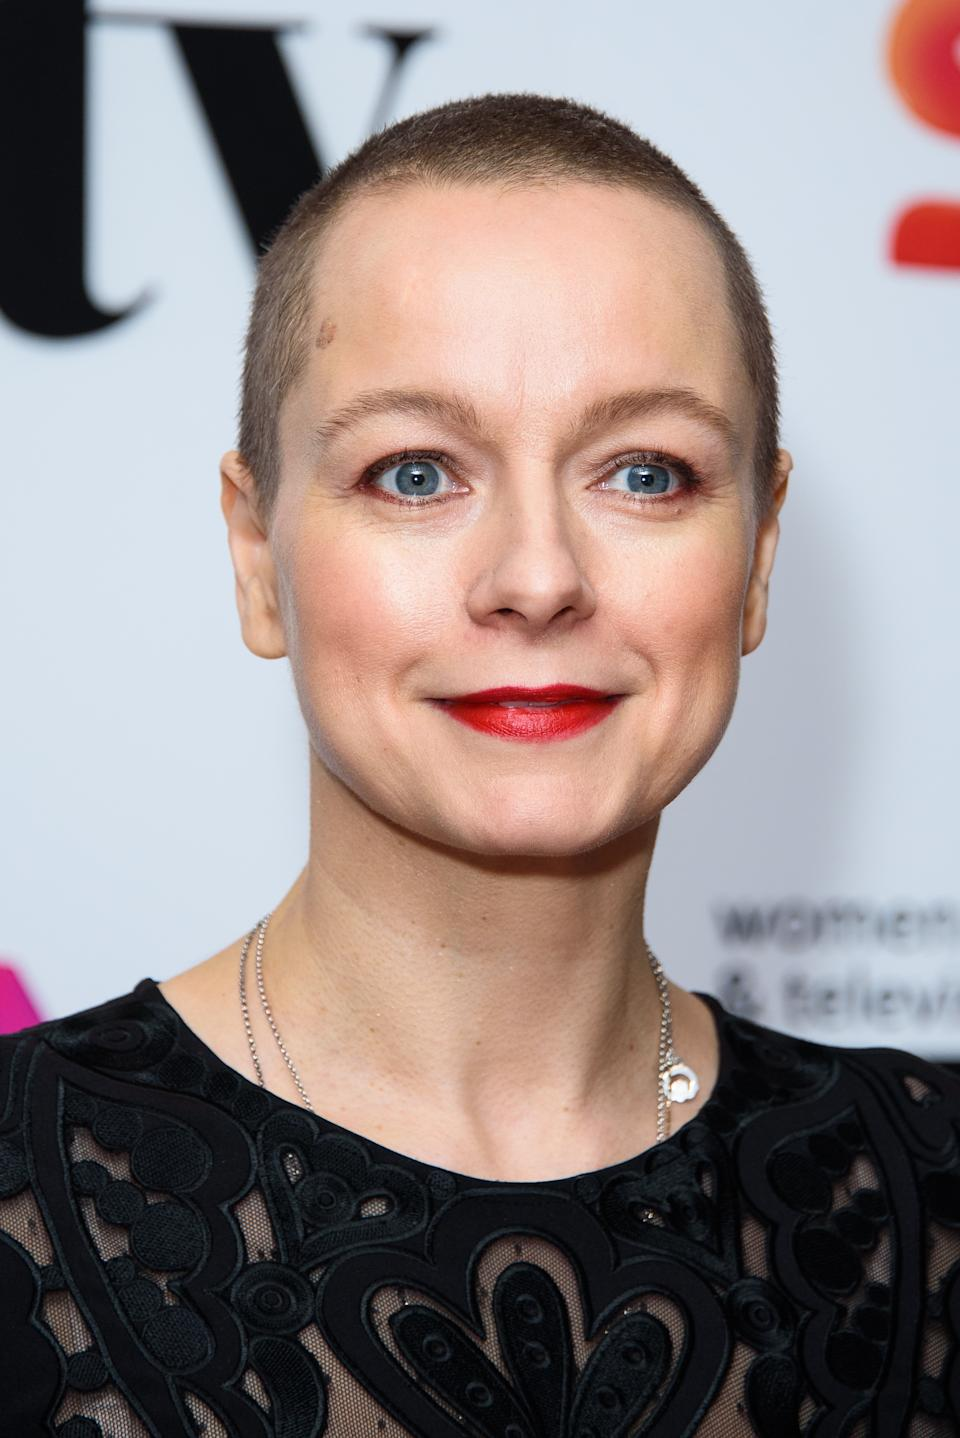 Samantha Morton during Women in Film & TV Awards 2019 at Hilton Park Lane on December 06, 2019 in London, England. (Photo by Joe Maher/Getty Images)